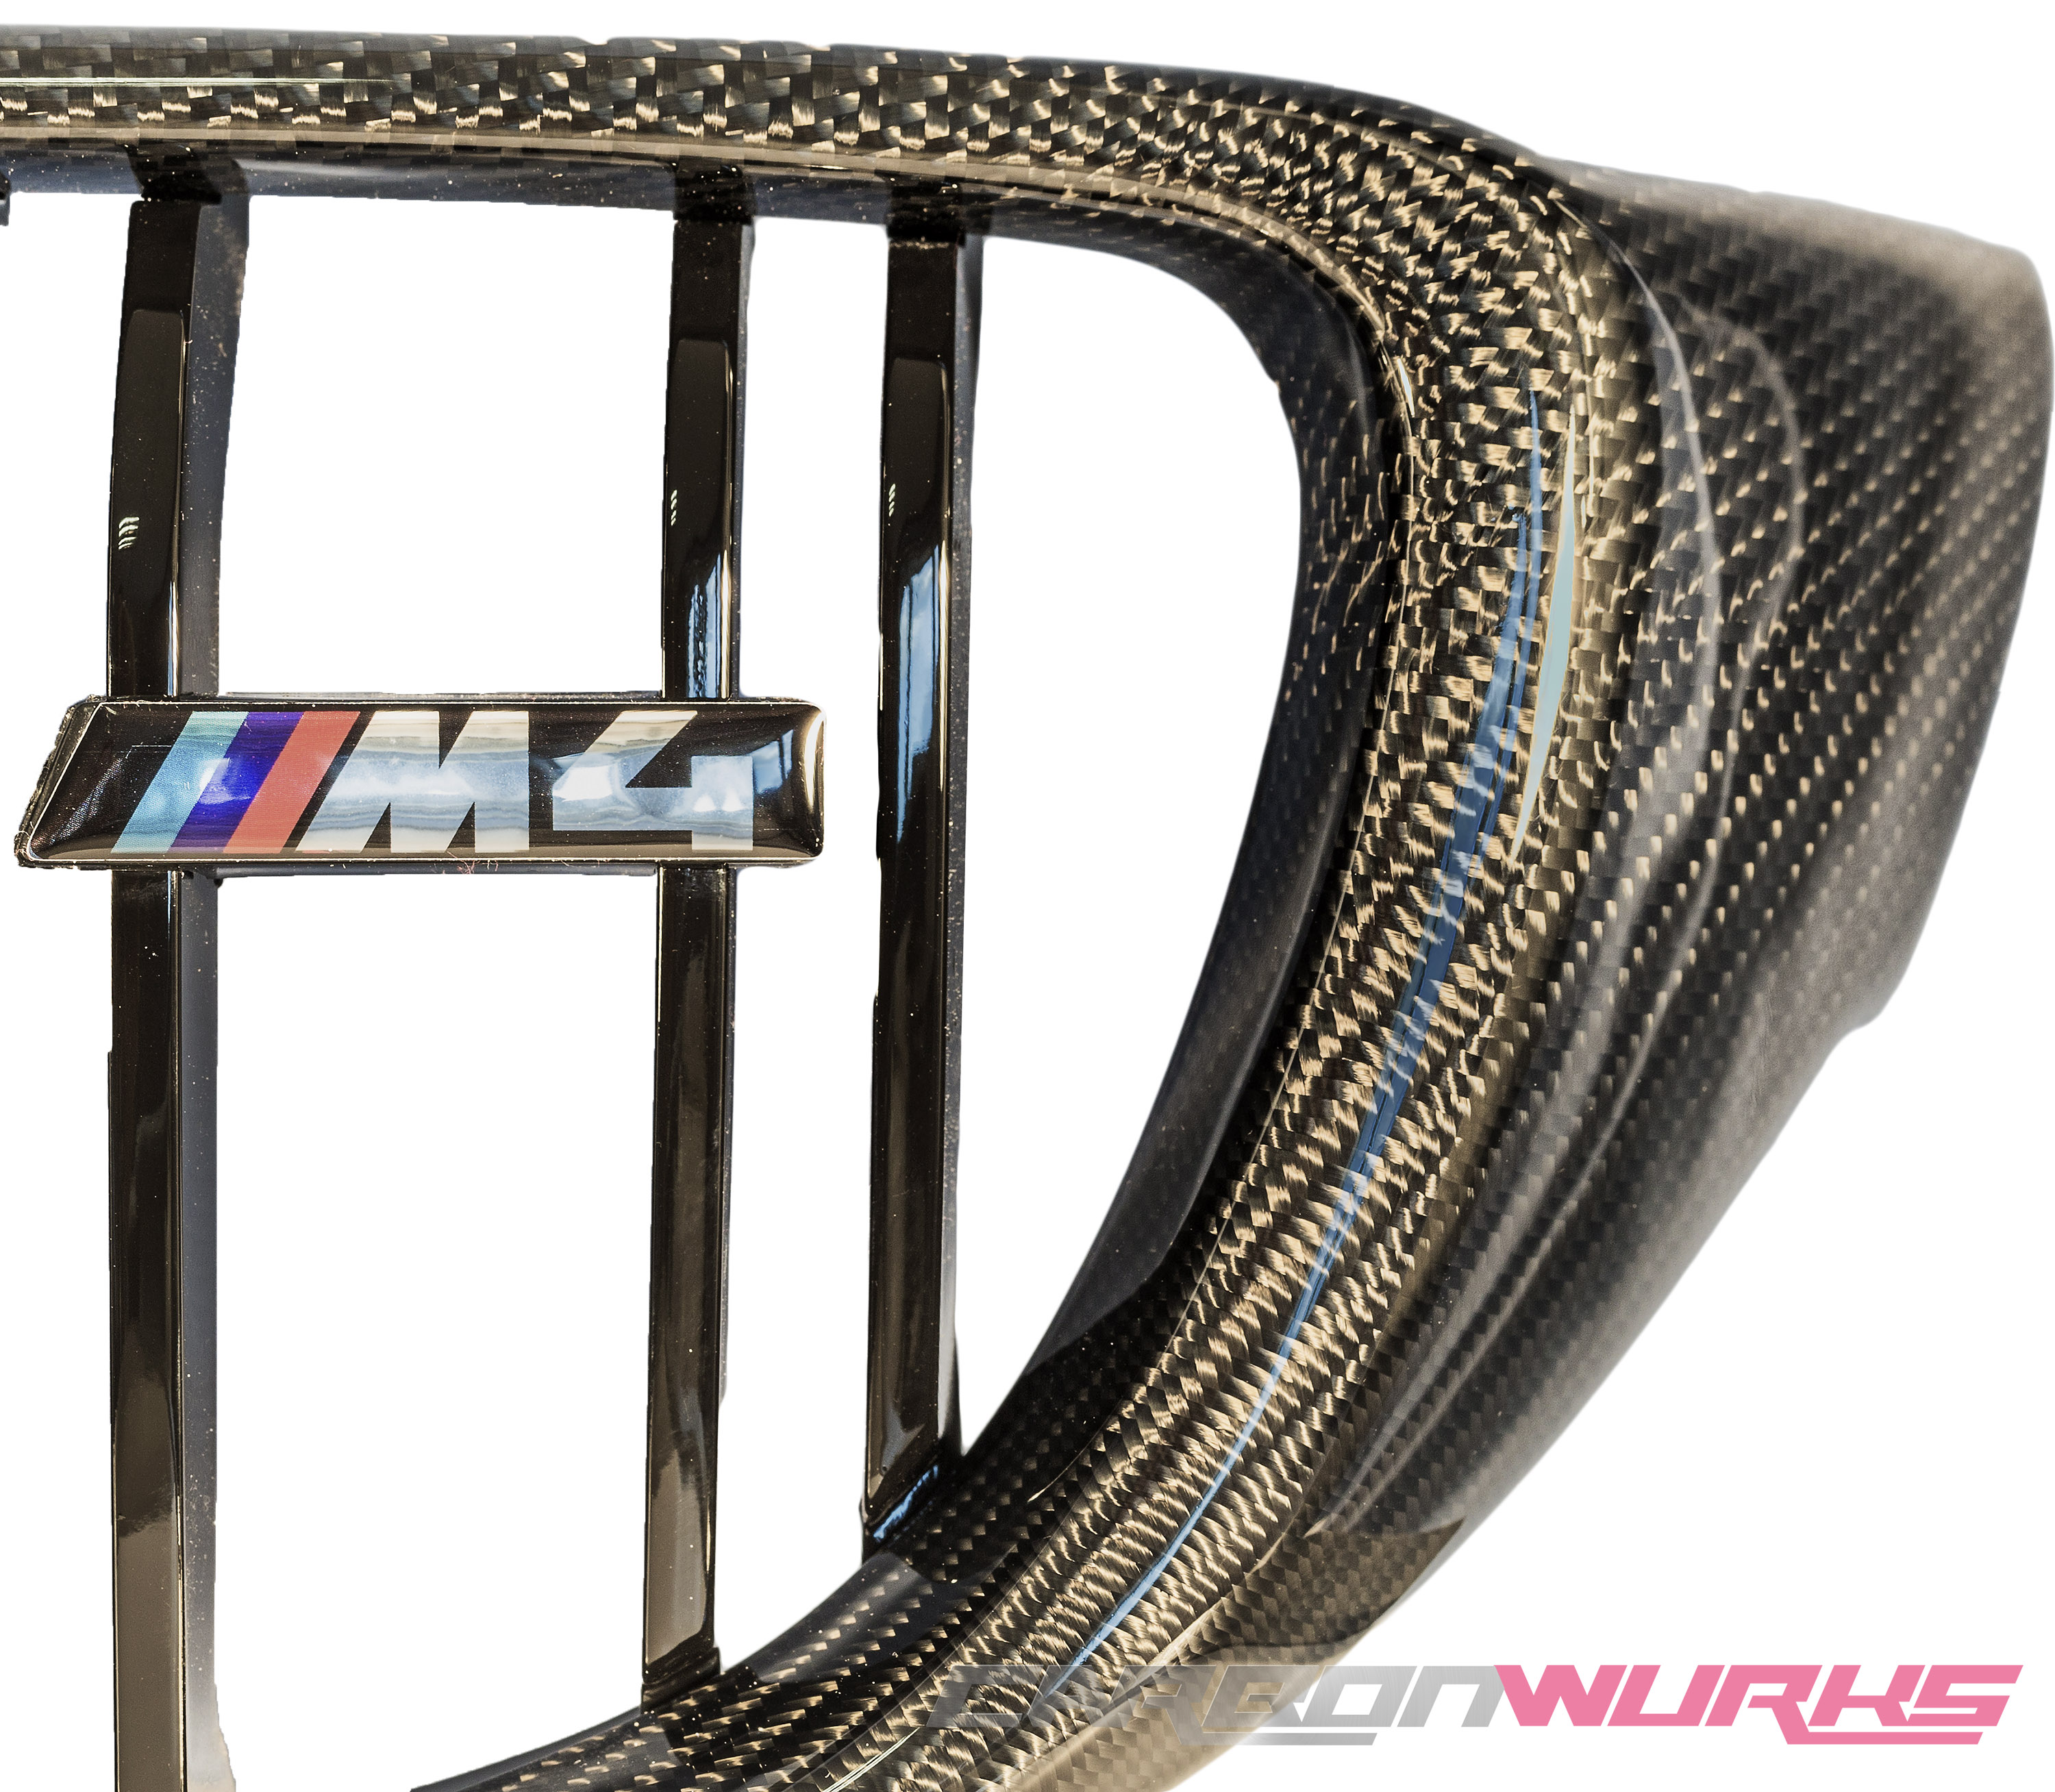 BMW M3/M4 Carbon Fibre Kidney Grilles - M Power Colours